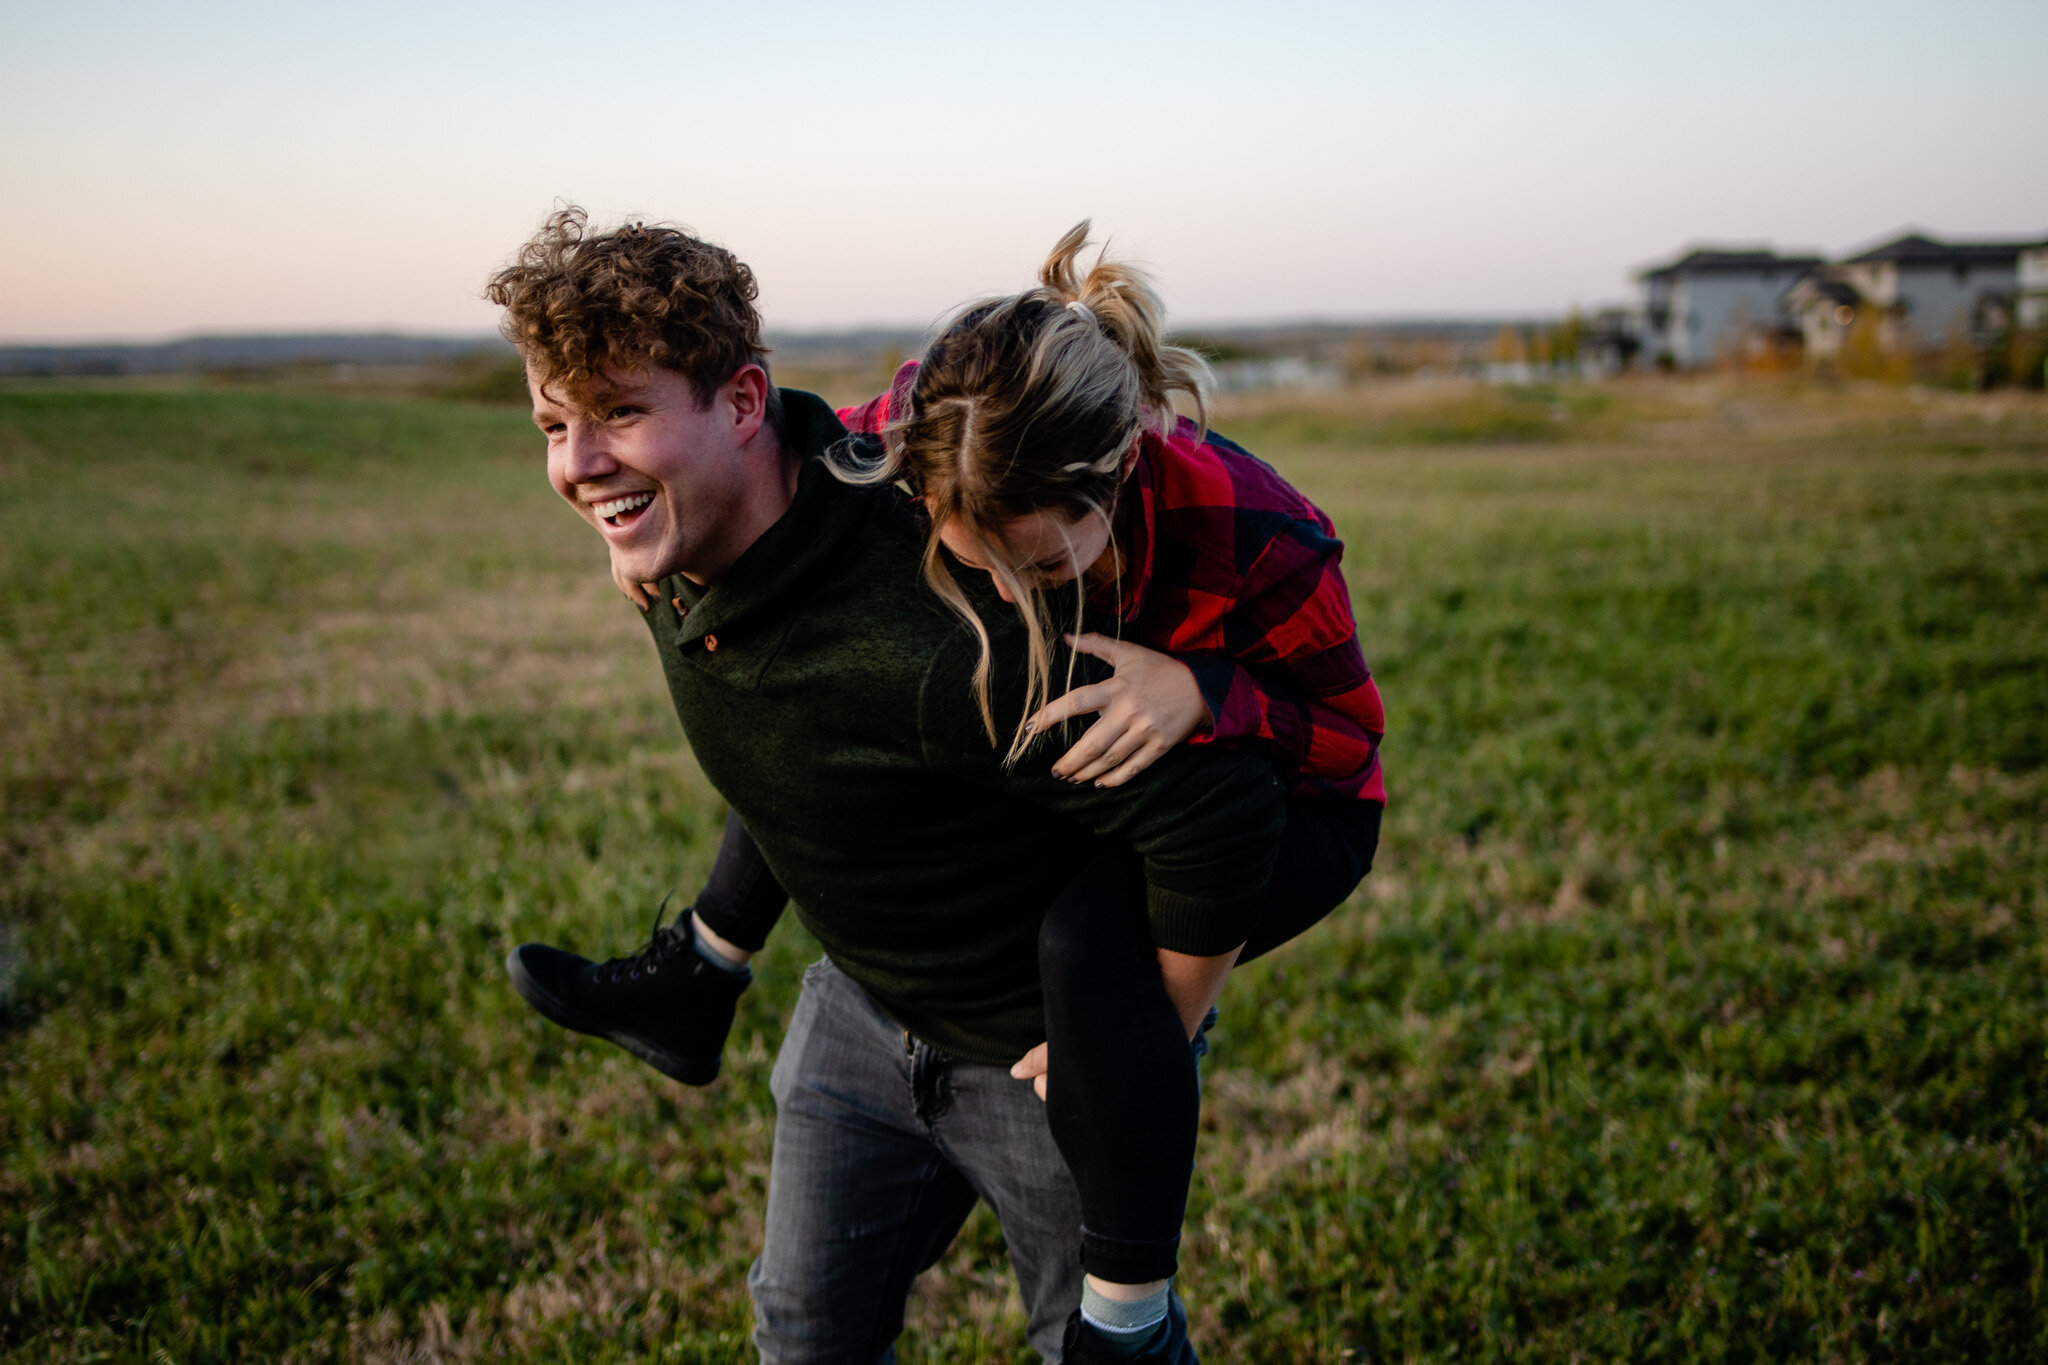 Connection Session Spruce Grove Couples Photographer Playful Fun Laughter Romantic Field Sunset-009.jpg